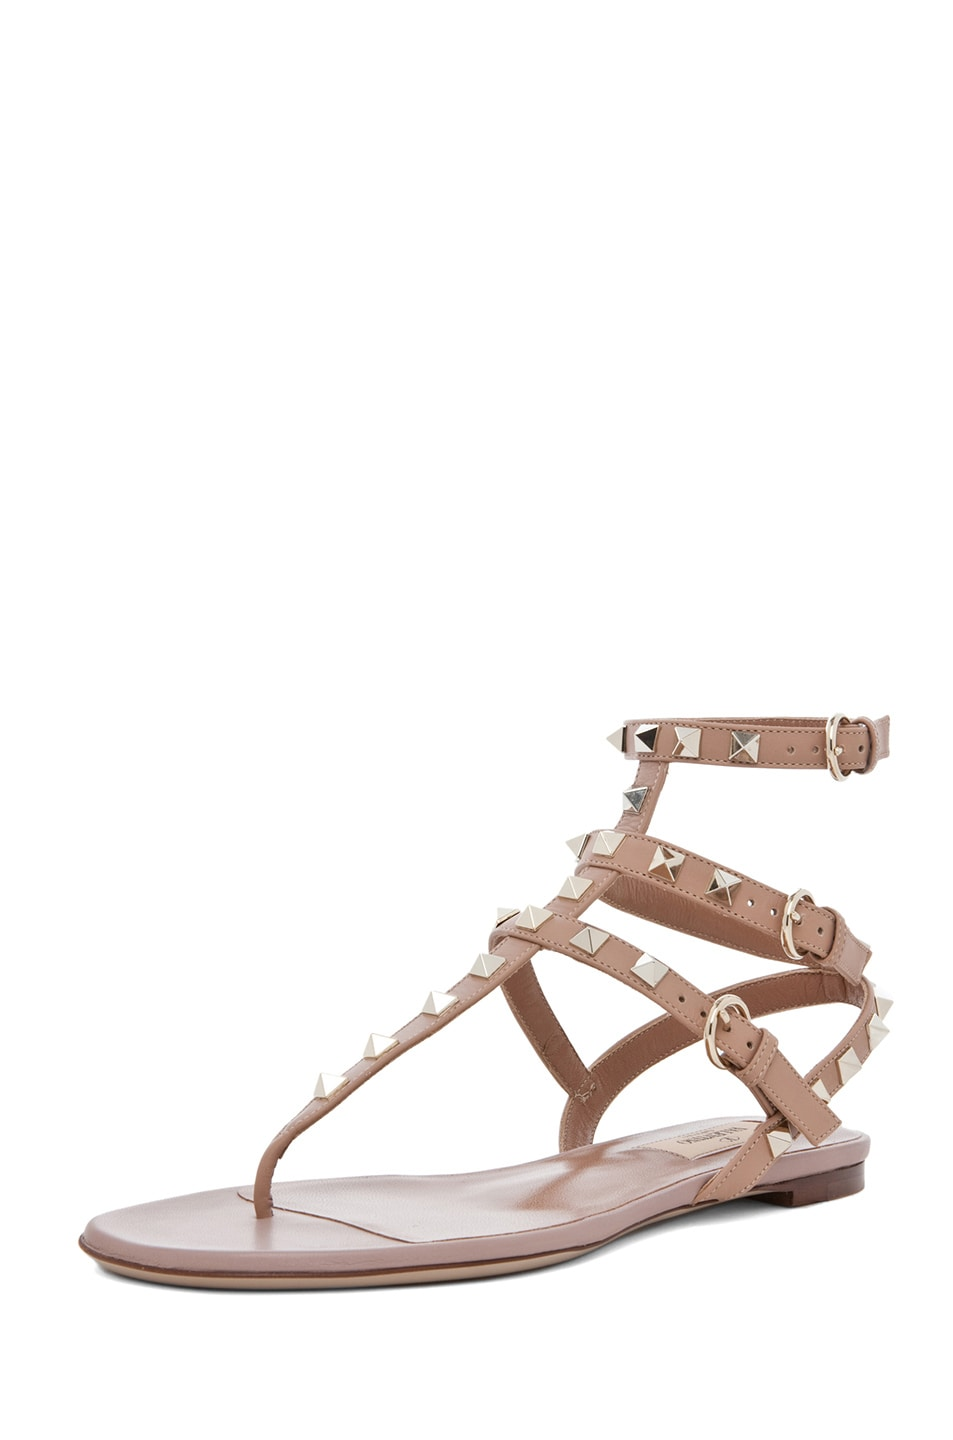 Image 2 of Valentino Rockstud Leather Gladiator Sandal T.05 in Soft Hazelnut & Nude & Platinum